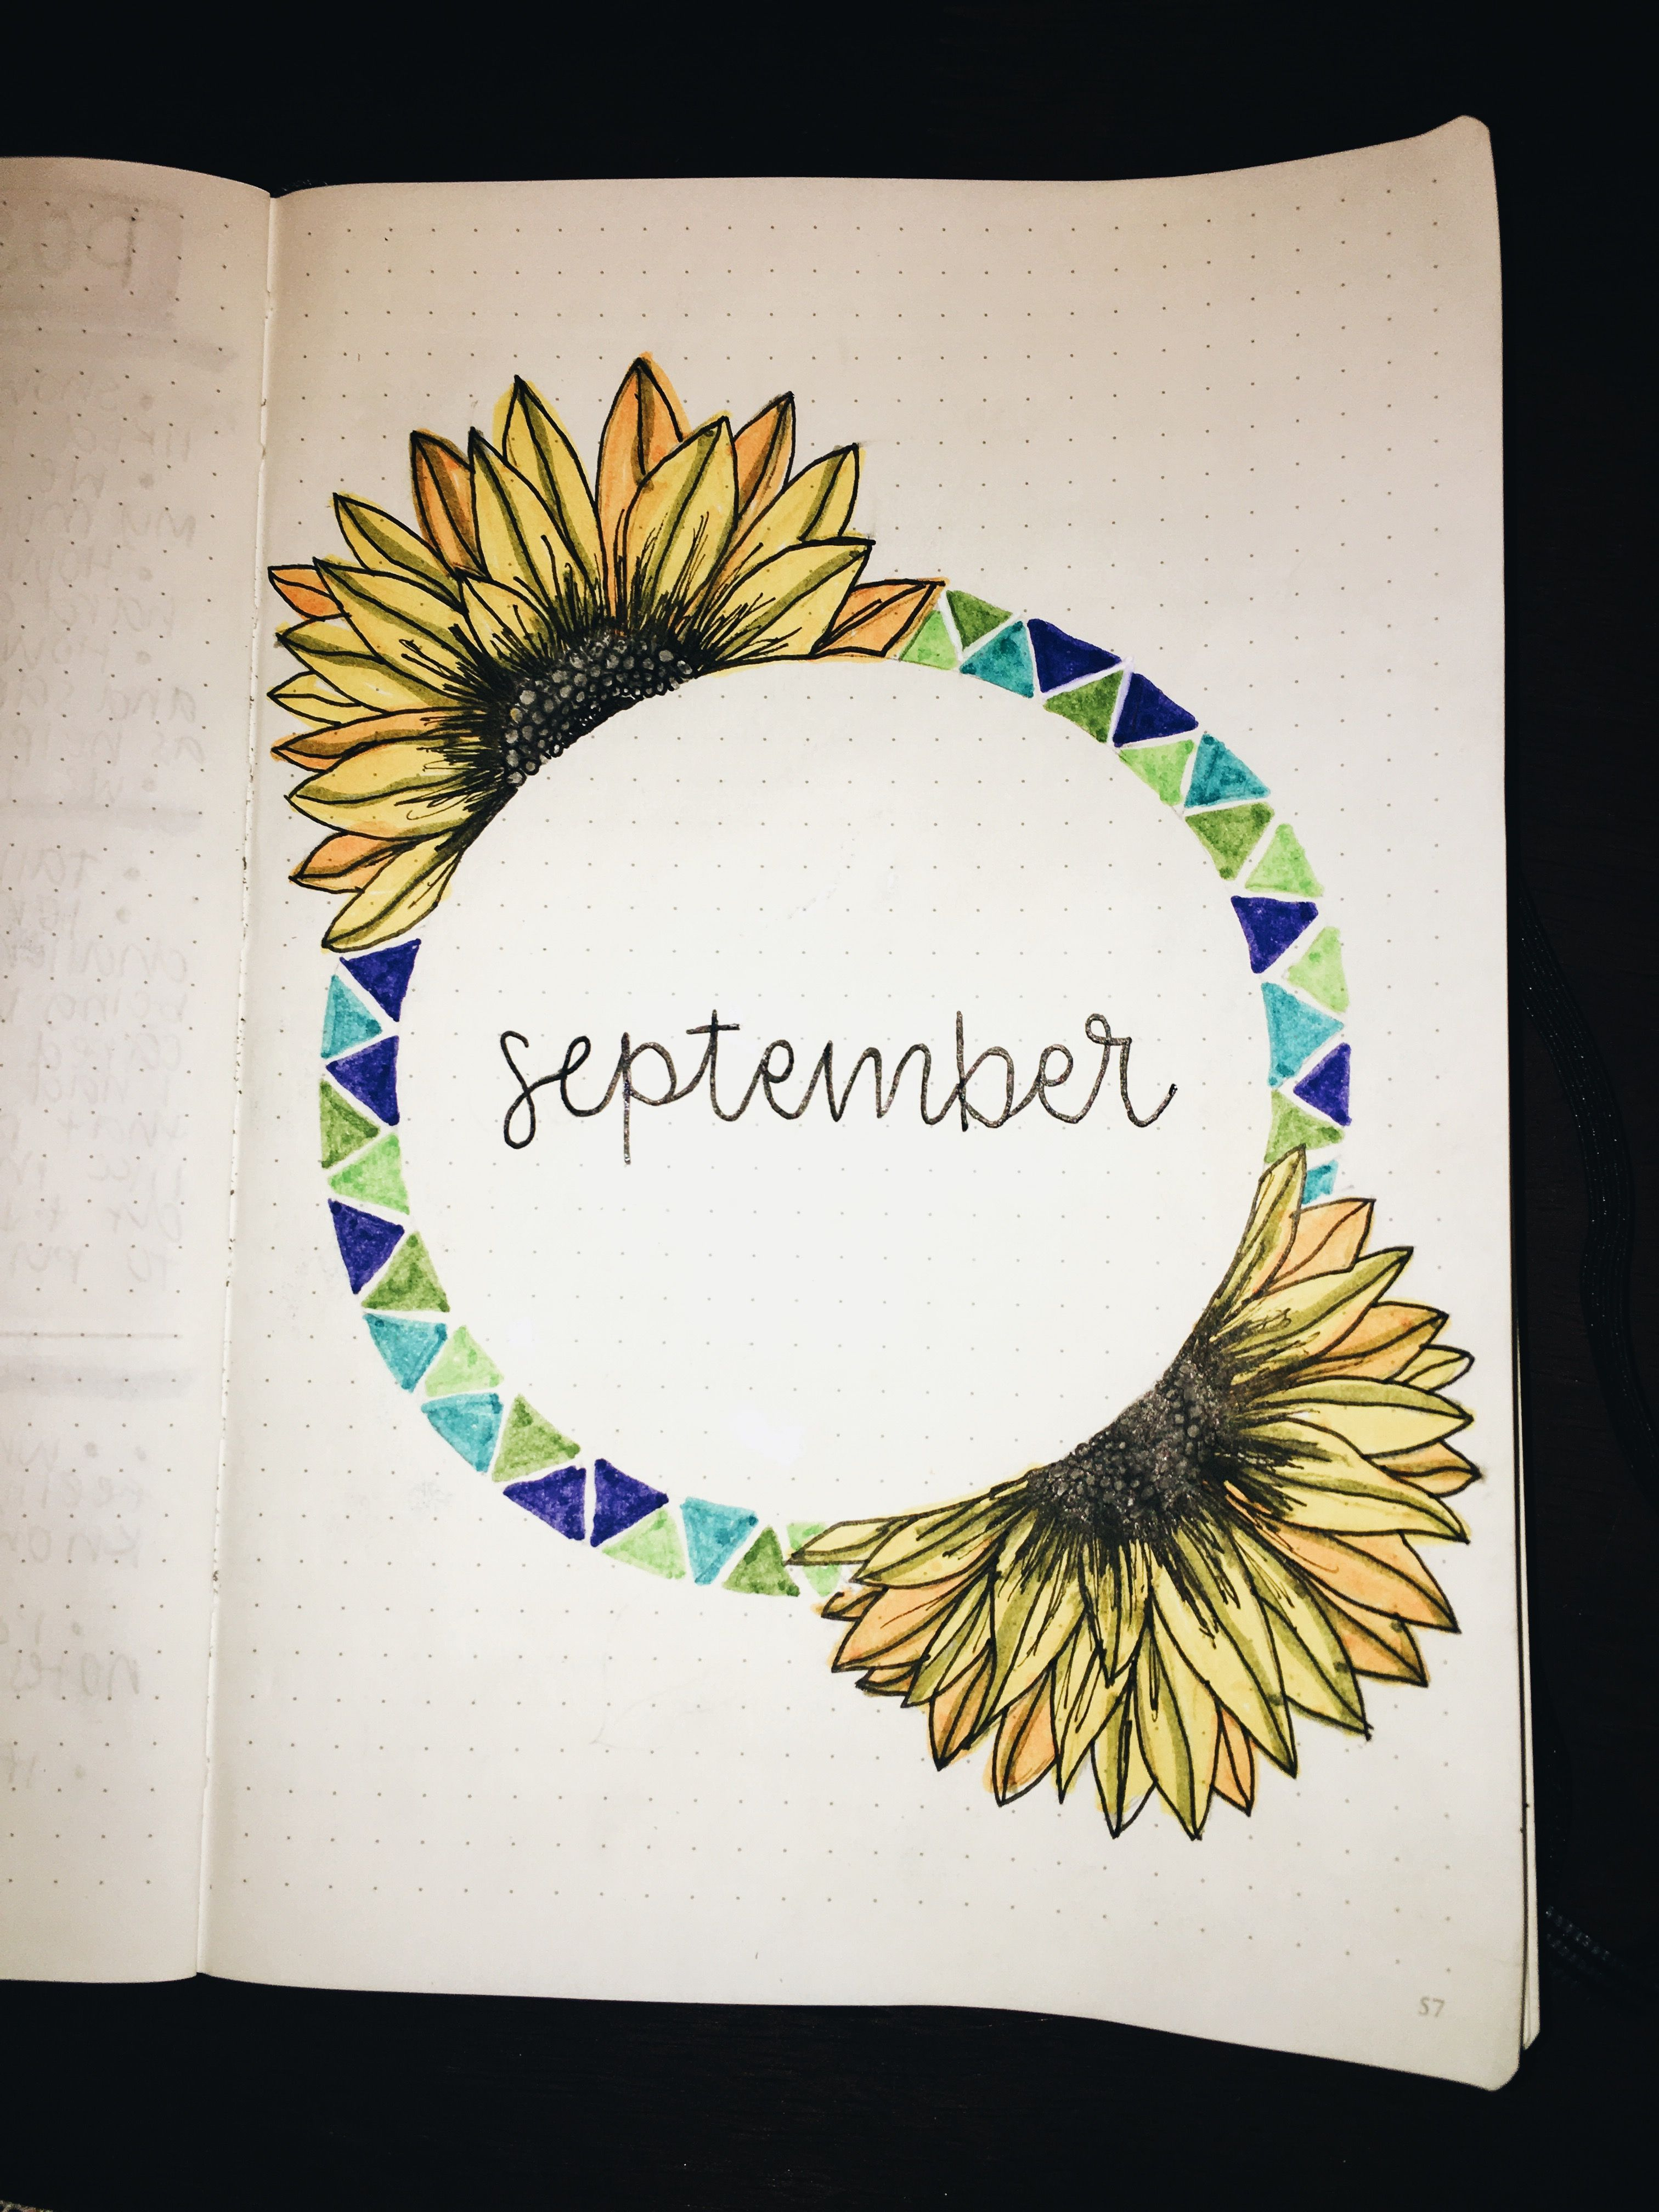 My September bullet journal cover. I couldn't find any that weren't too autumnal and weren't too summer-y, so I did a bit of a mix & got this. #September #Bulletjournal #bojo #art #diy #fall #doodle #drawing #flower #sunflower #ideas #septemberbulletjournalcover